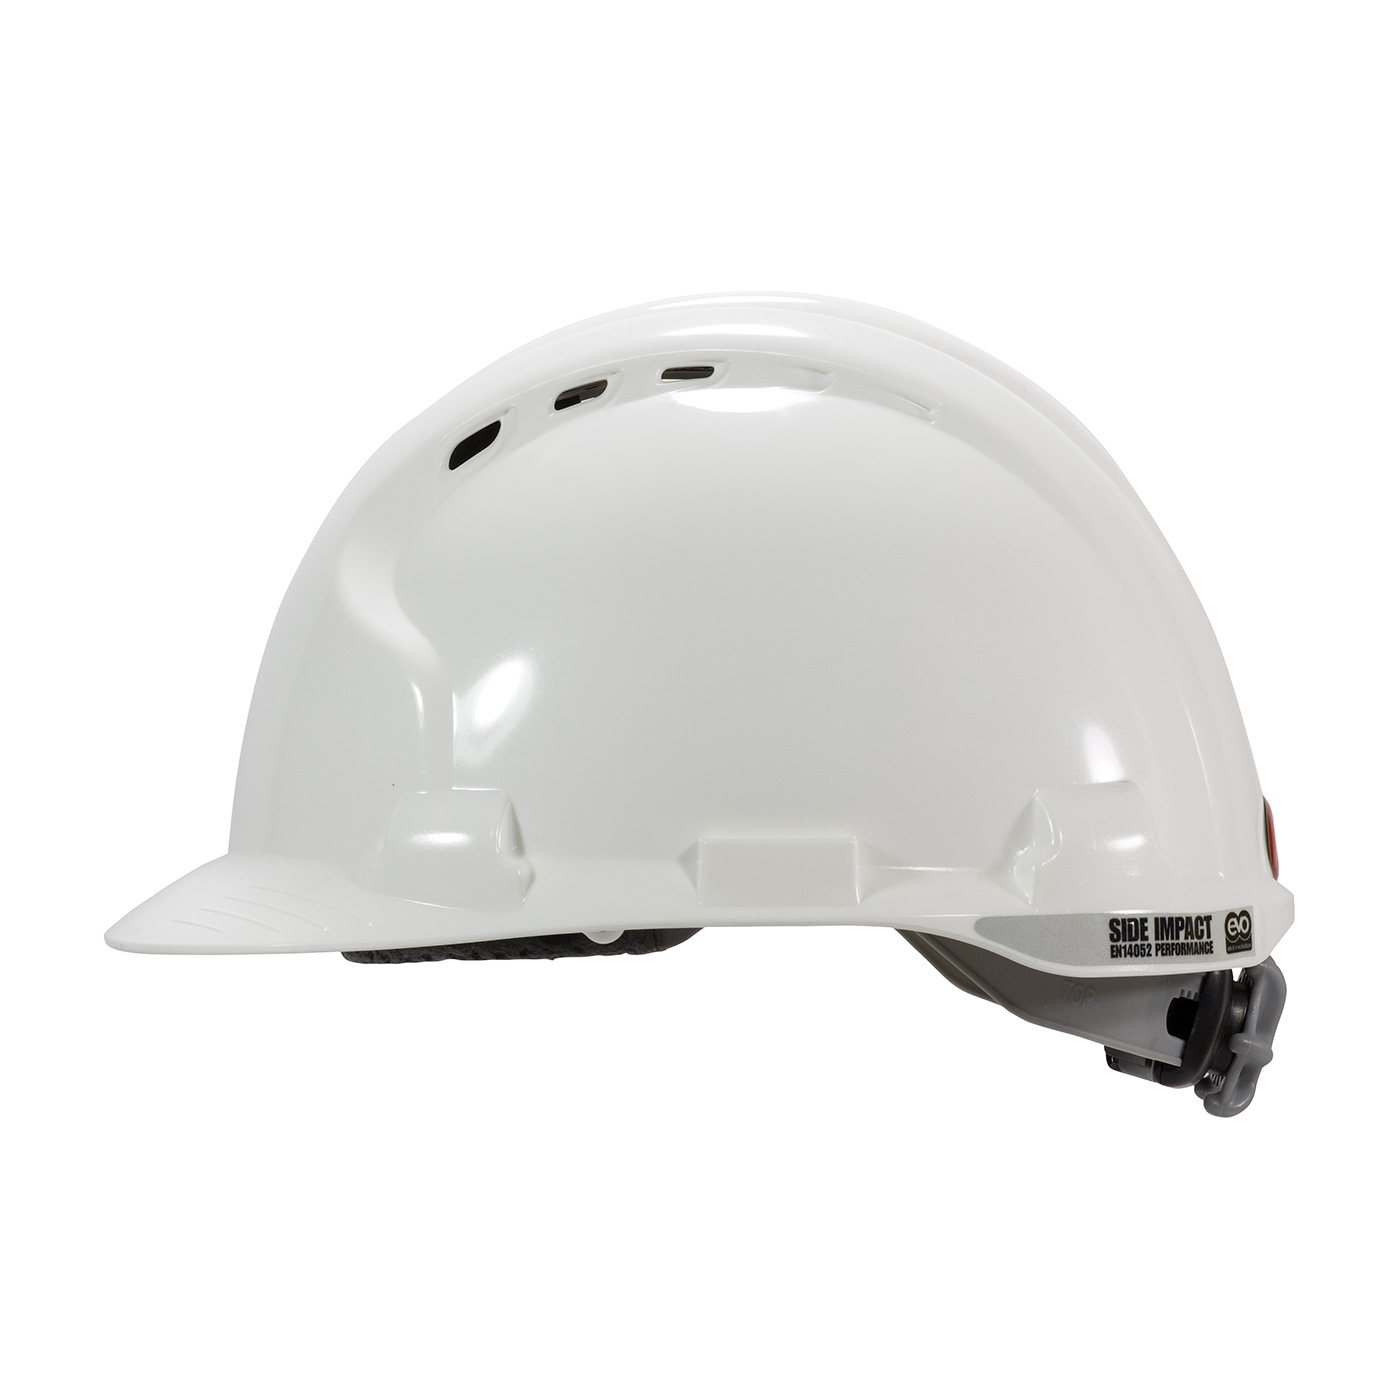 Mk8 Evolution Hard Hat Protective Industrial Products